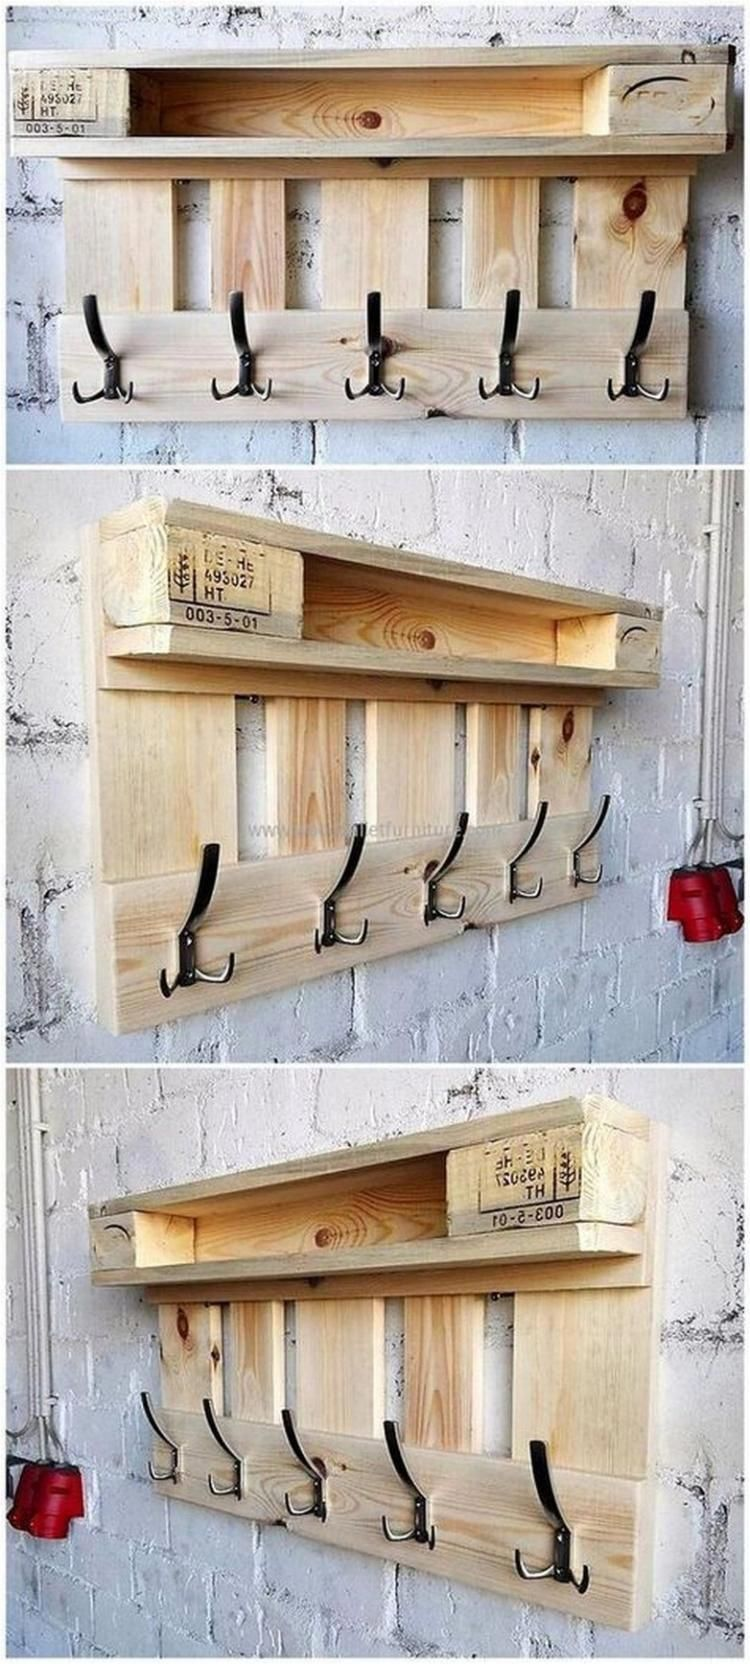 Easy Money Making Wood Projects Woodworking Projects That Sell Wood Projects That Sell Carpentry Projects